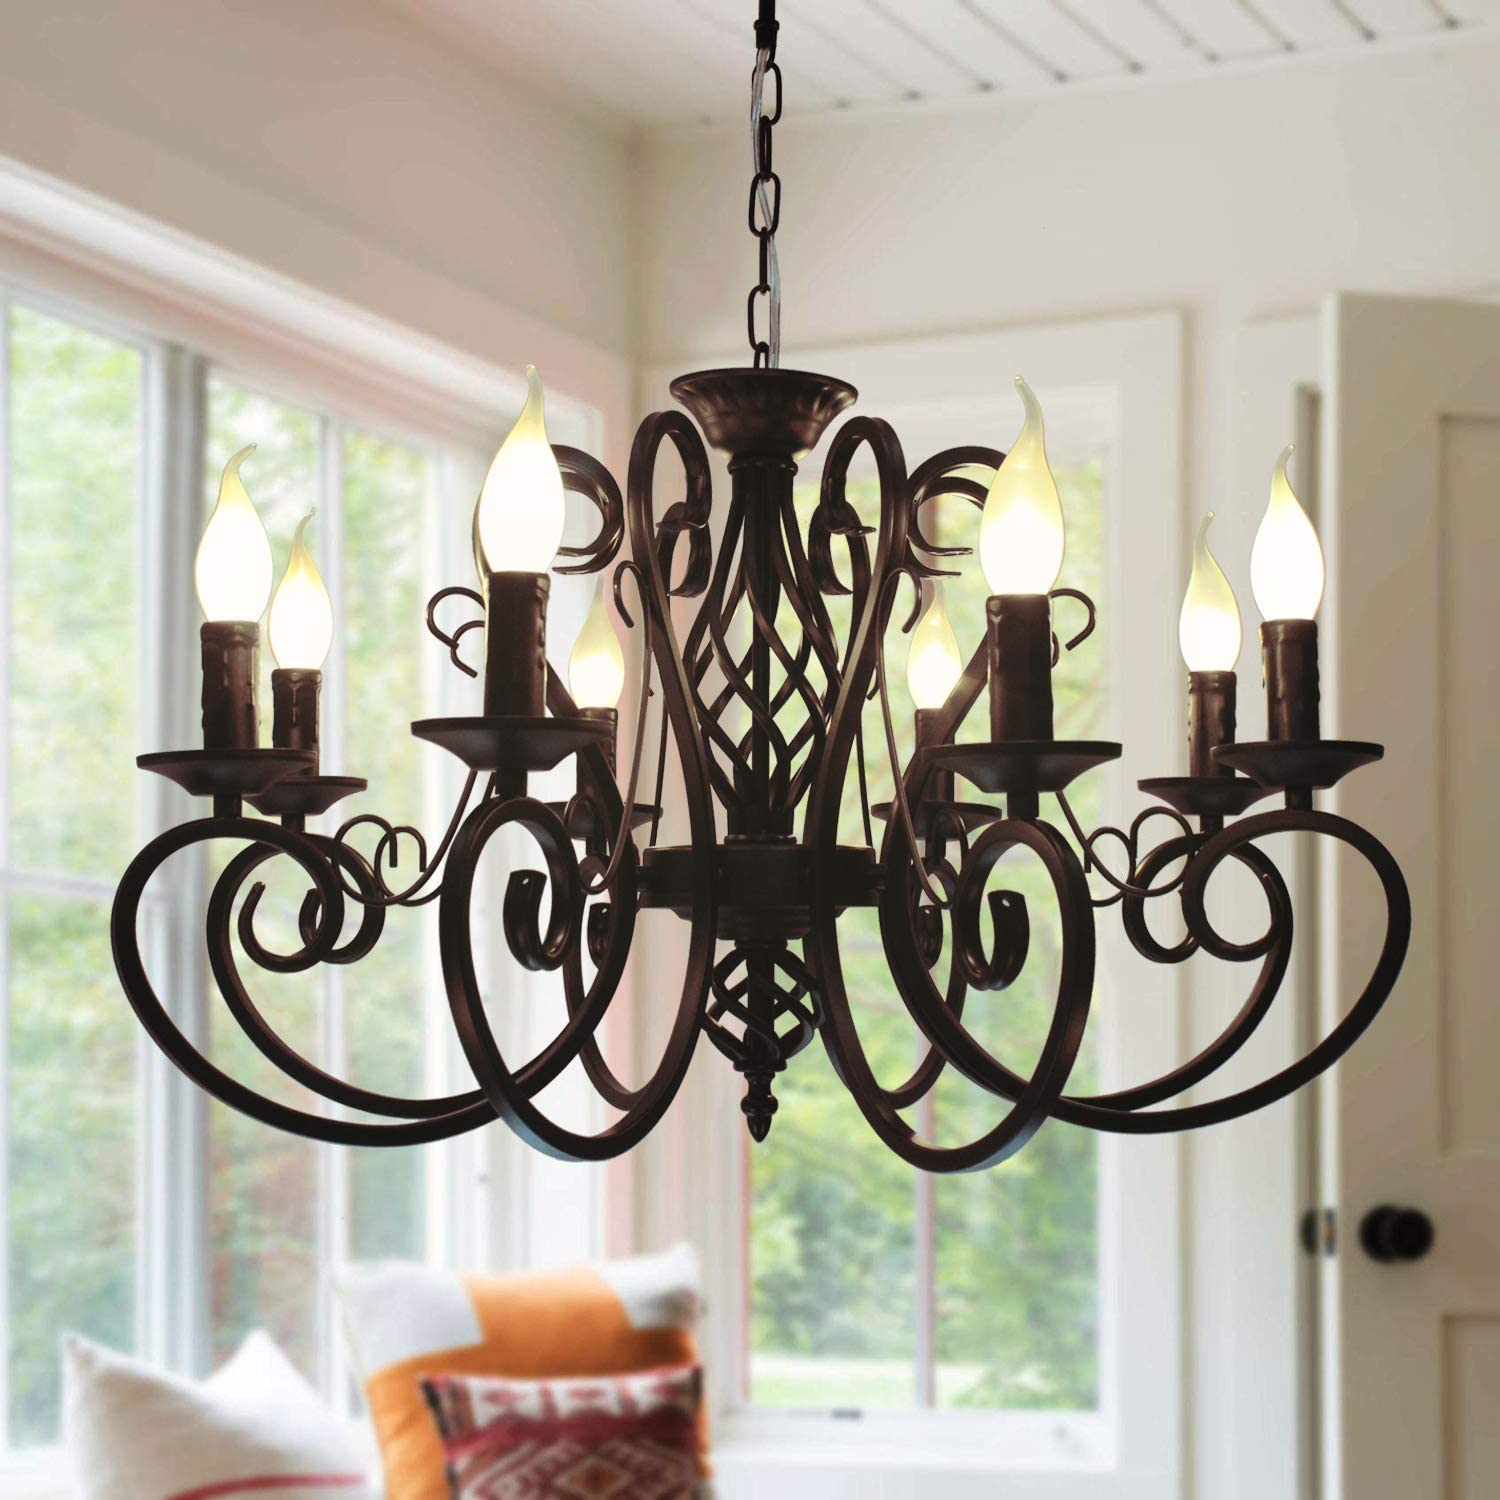 Chandeliers Home & Living Country style French home decor Mid ...